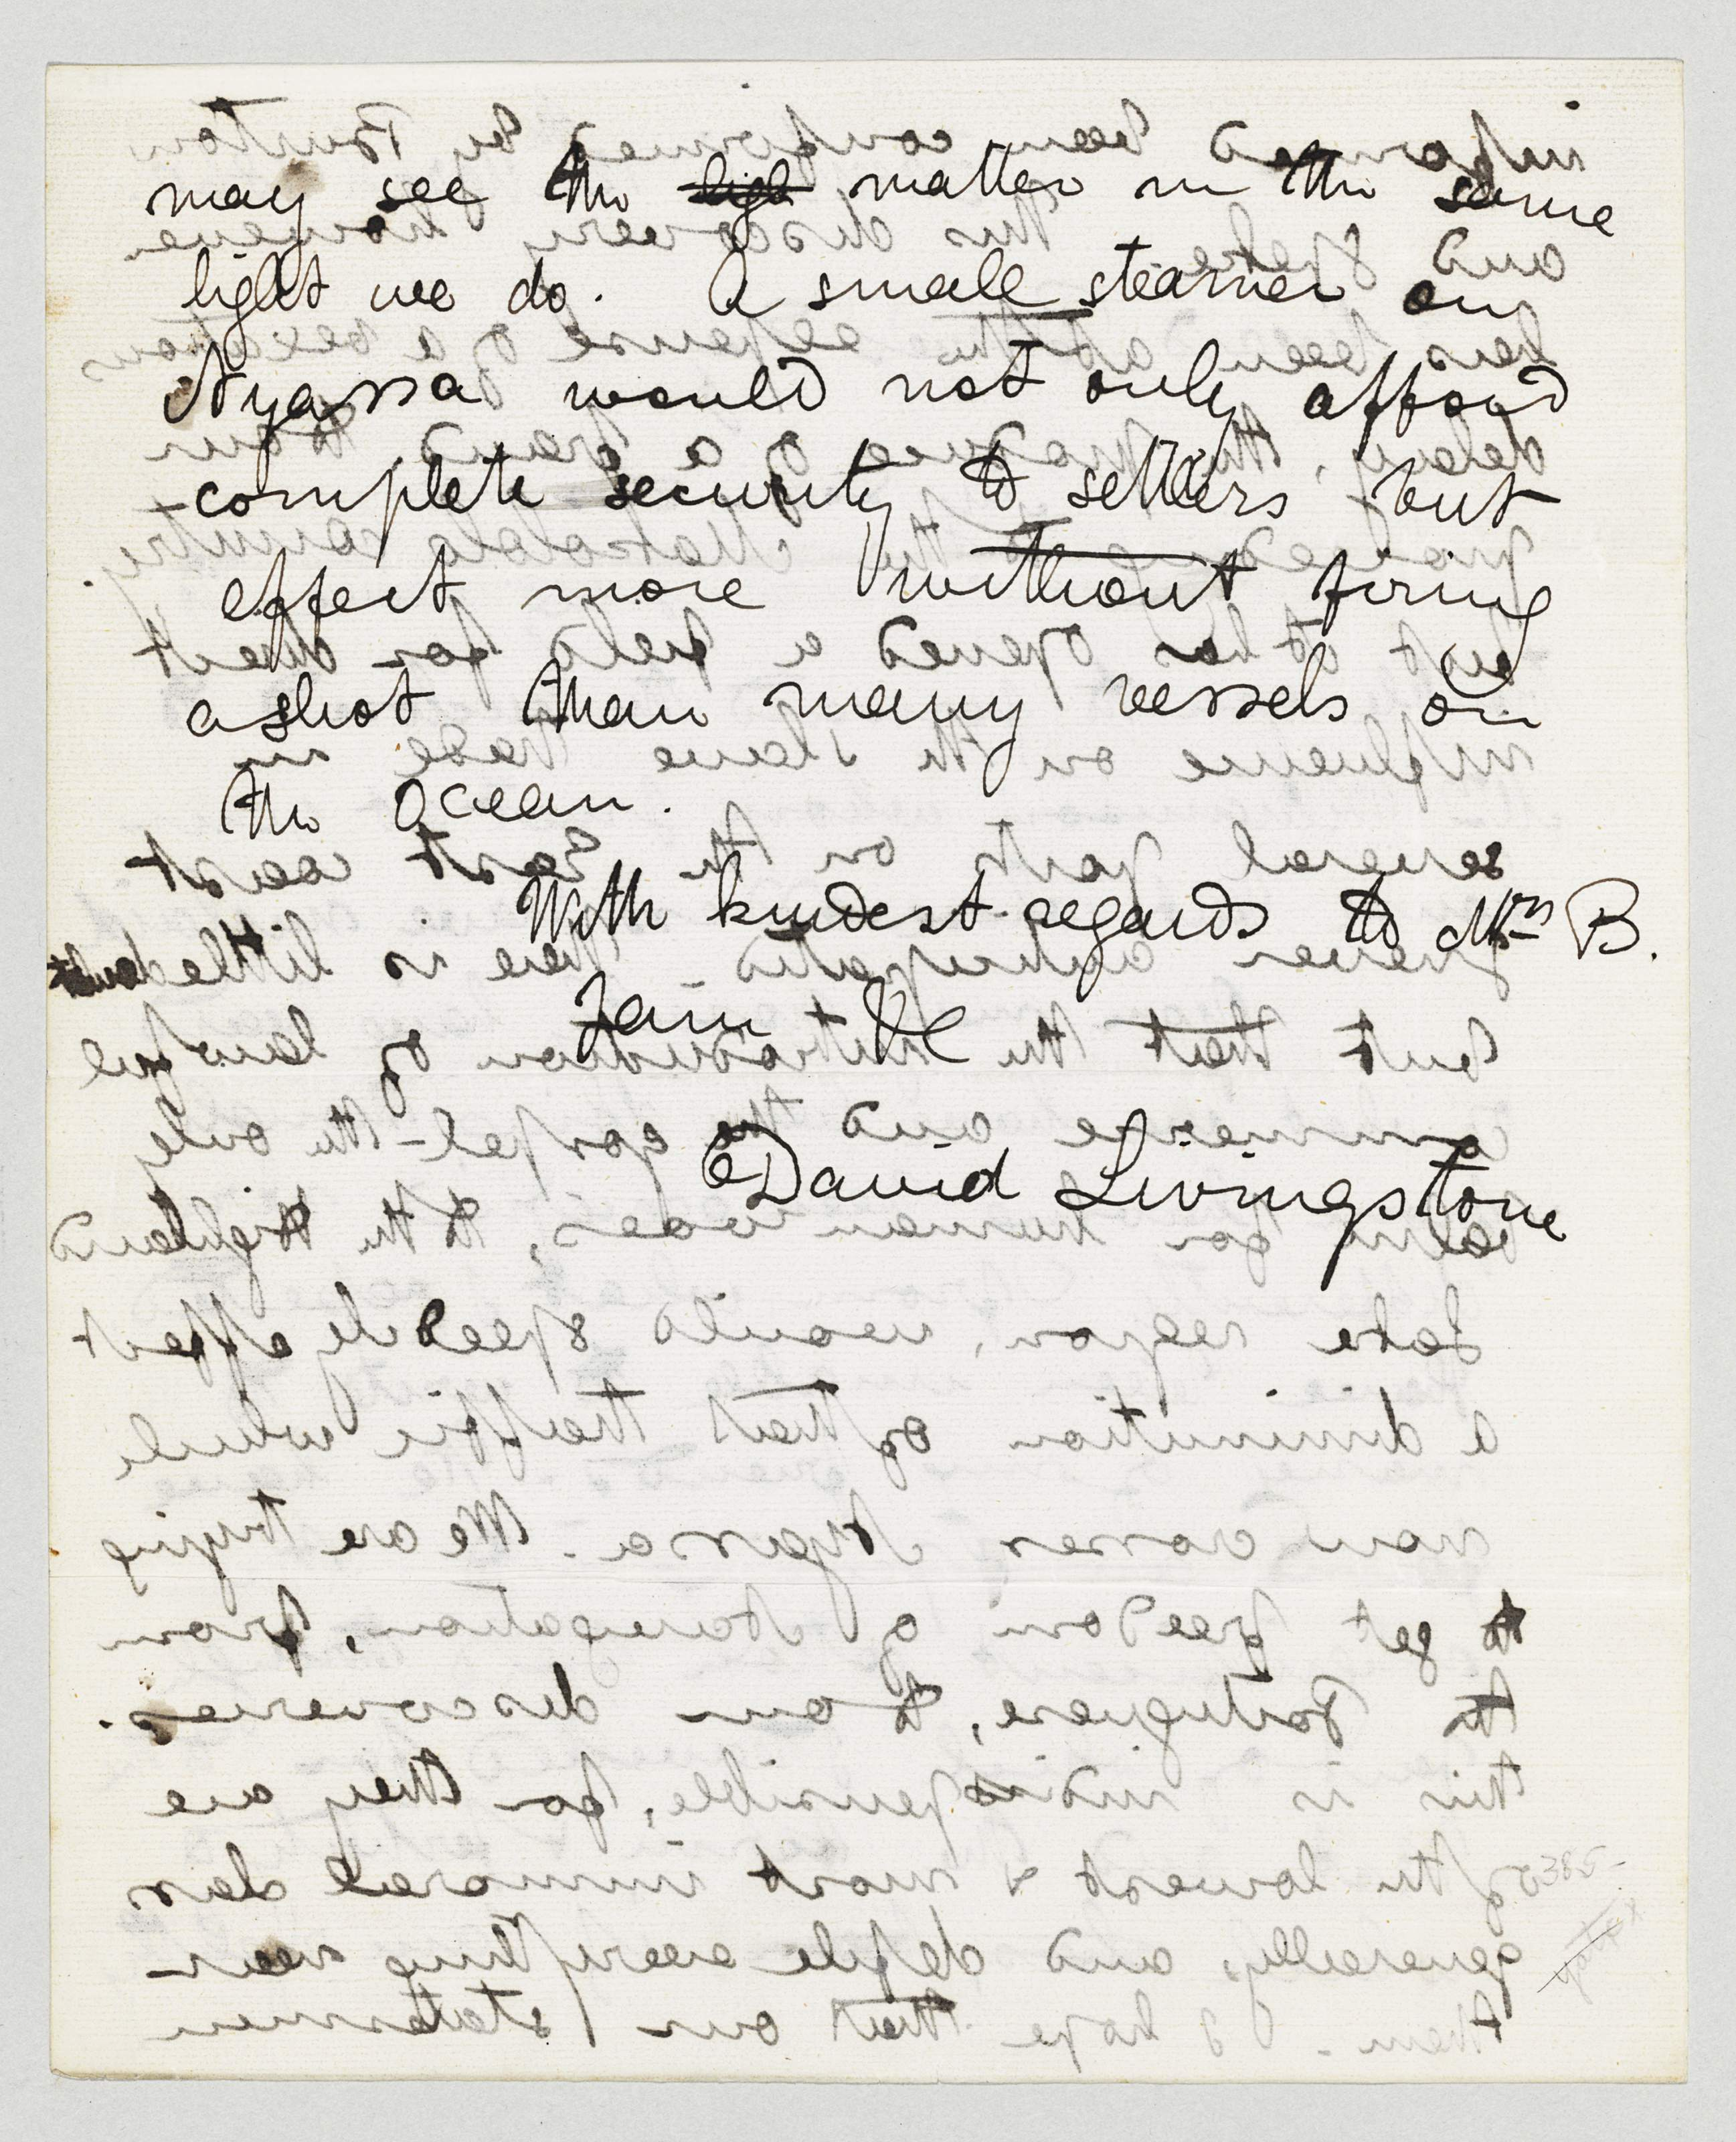 """LIVINGSTONE, David (1813-1873) Explorer. Autograph letter signed (""""David Livingstone"""") to Edward Baines (1800-1890), Zambesi, 12 March 1860. 3 pages, 4to, blank integral, show-through."""